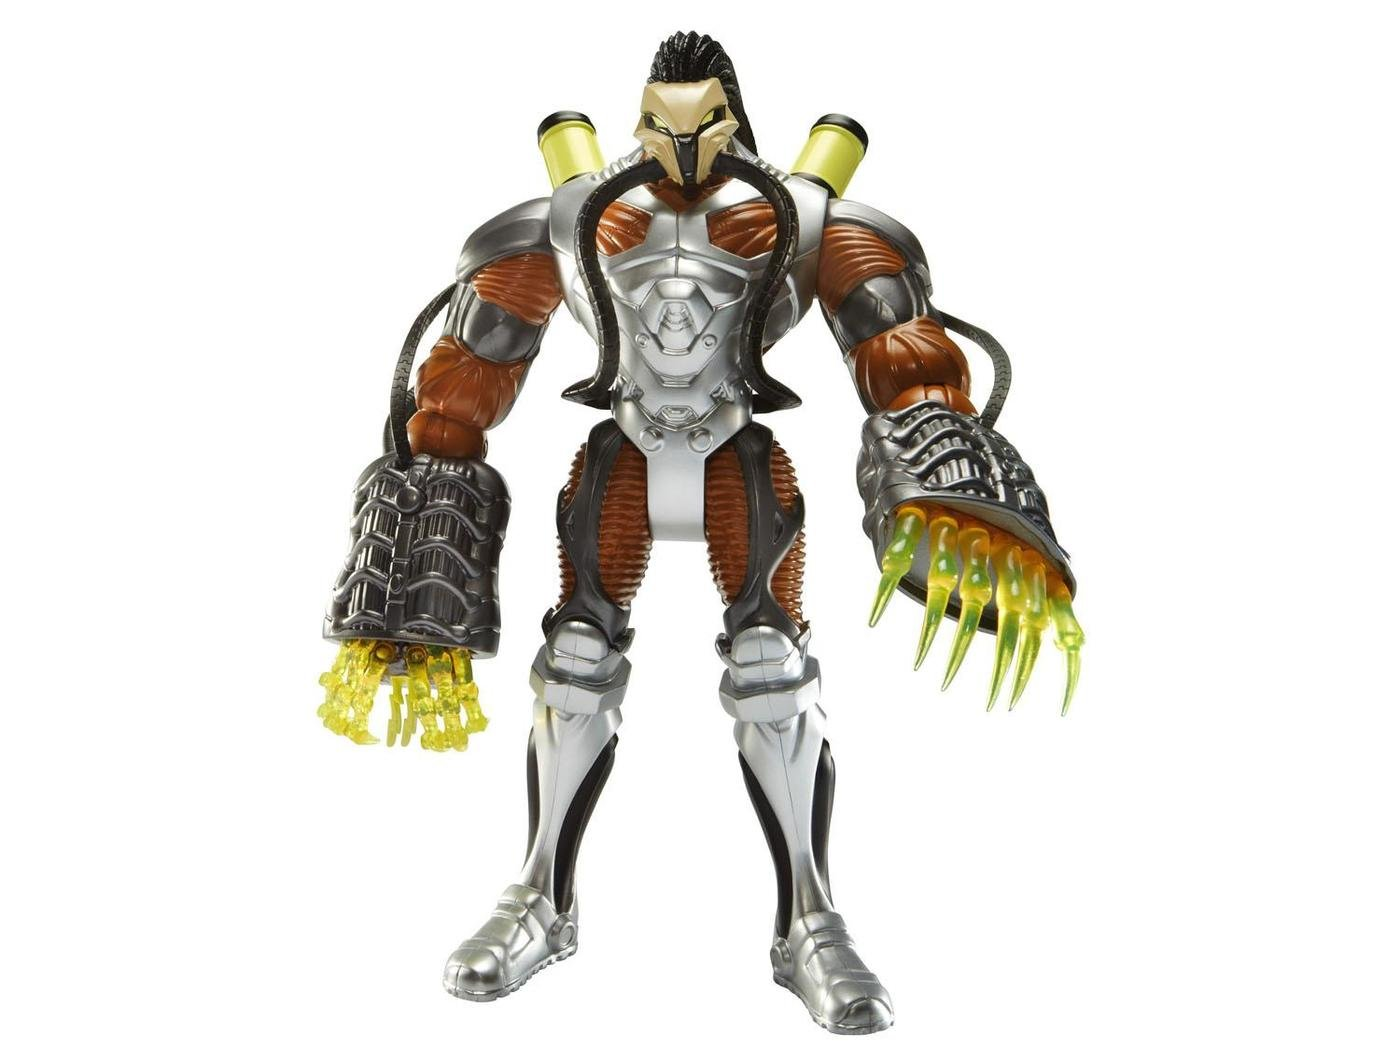 Uncategorized Max Steel Toxzon max steel toxzon terror toxico by doug snook at coroflot com be the first to comment on this project